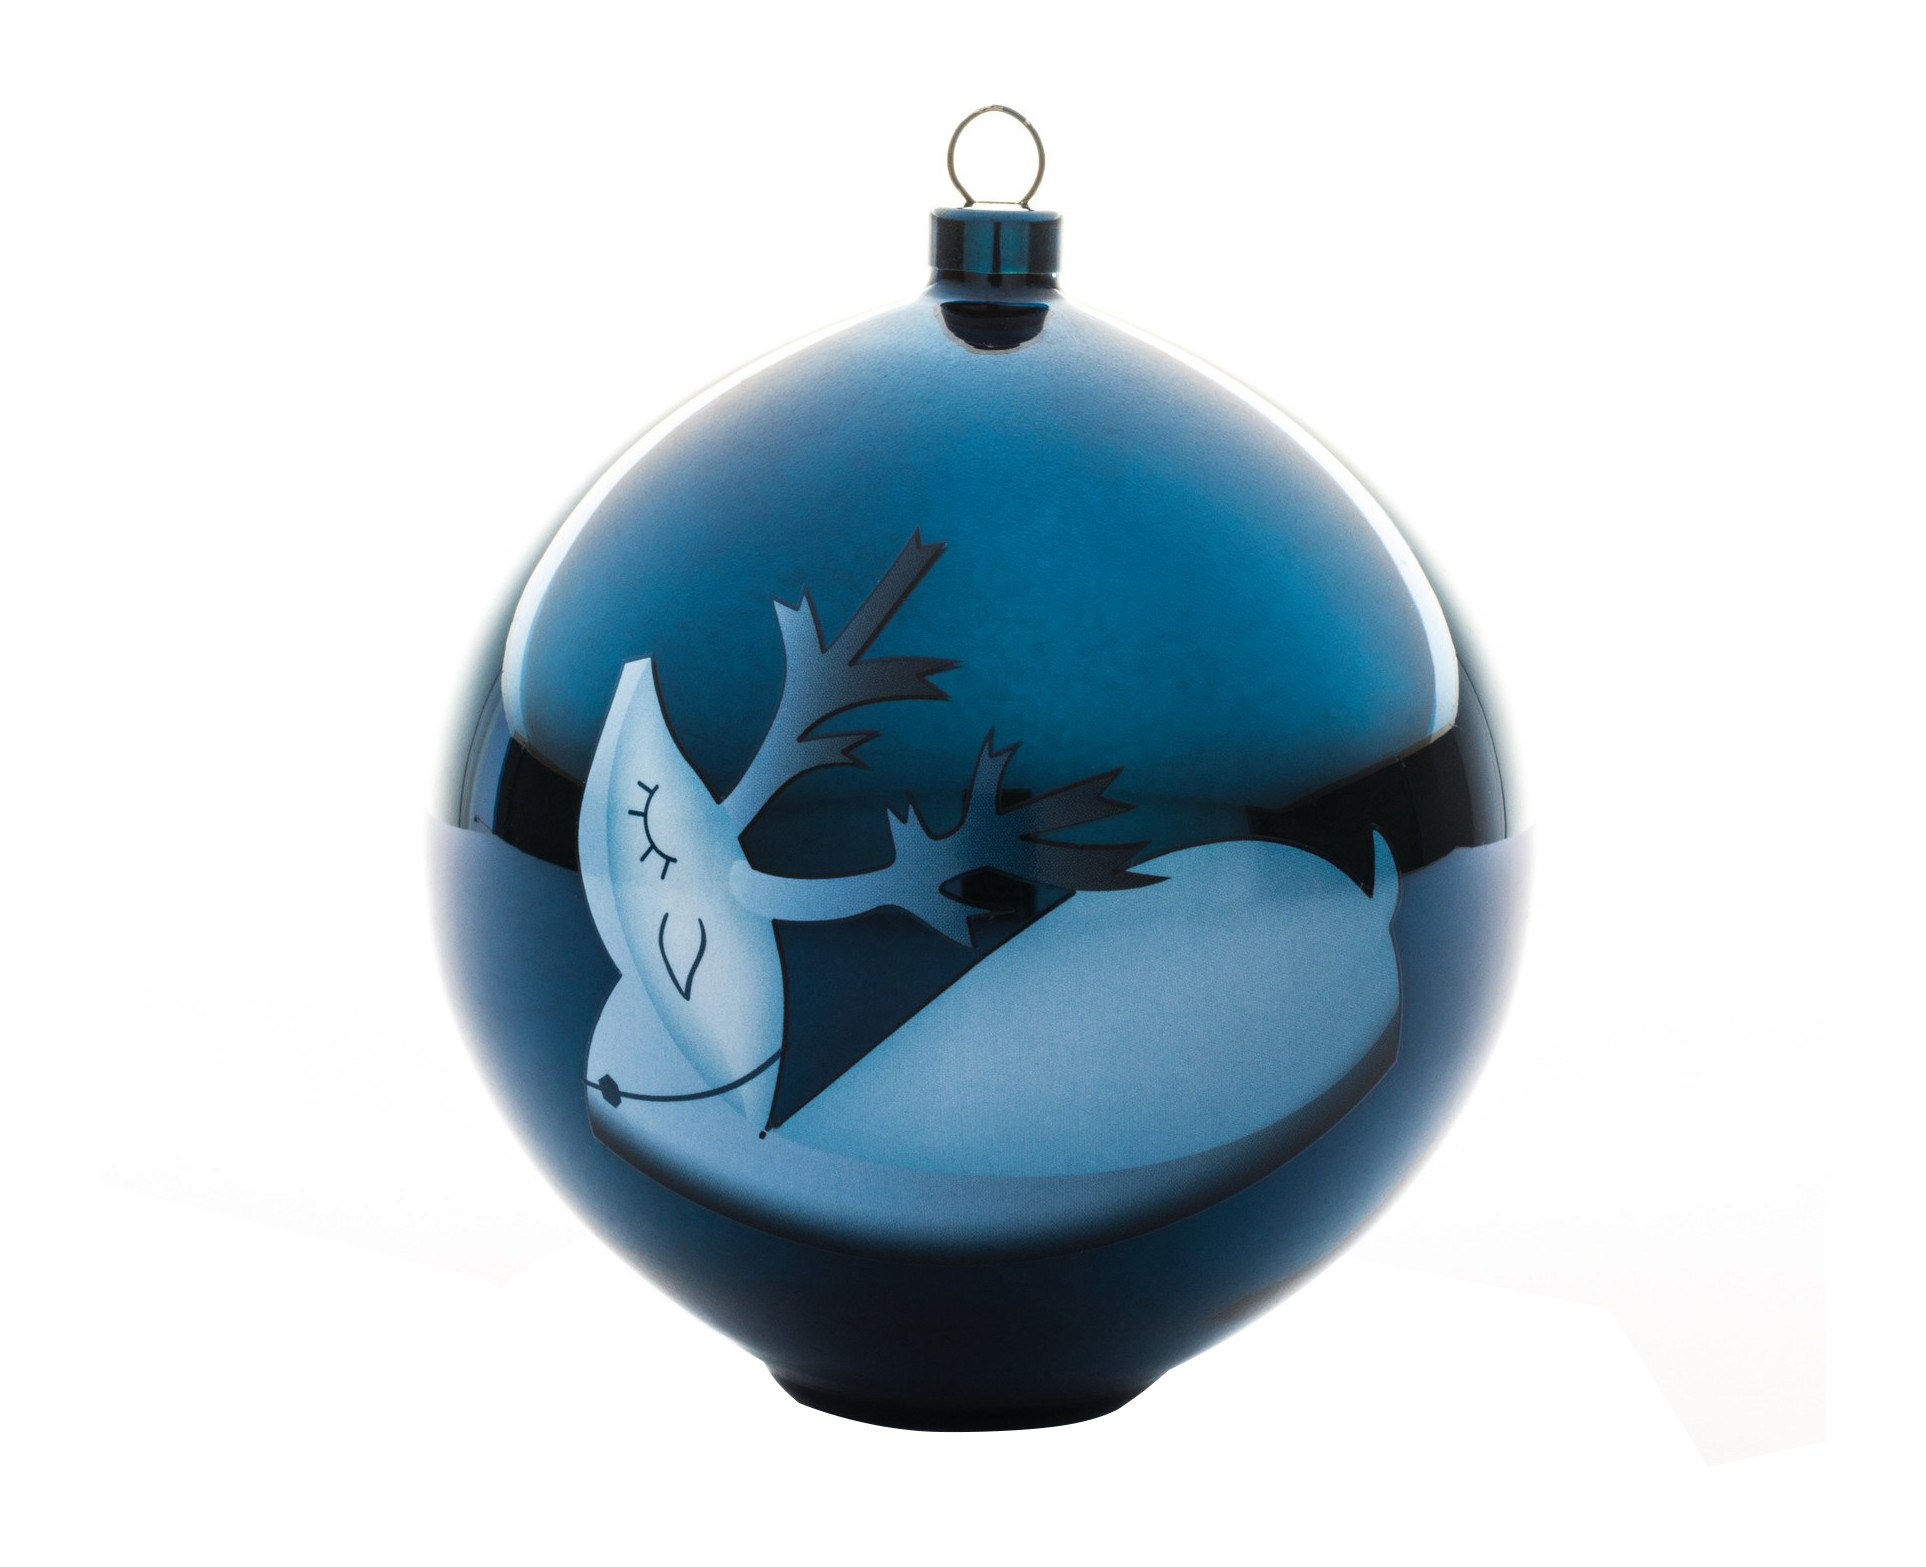 Bombka Blue Christmas renifer - 57847